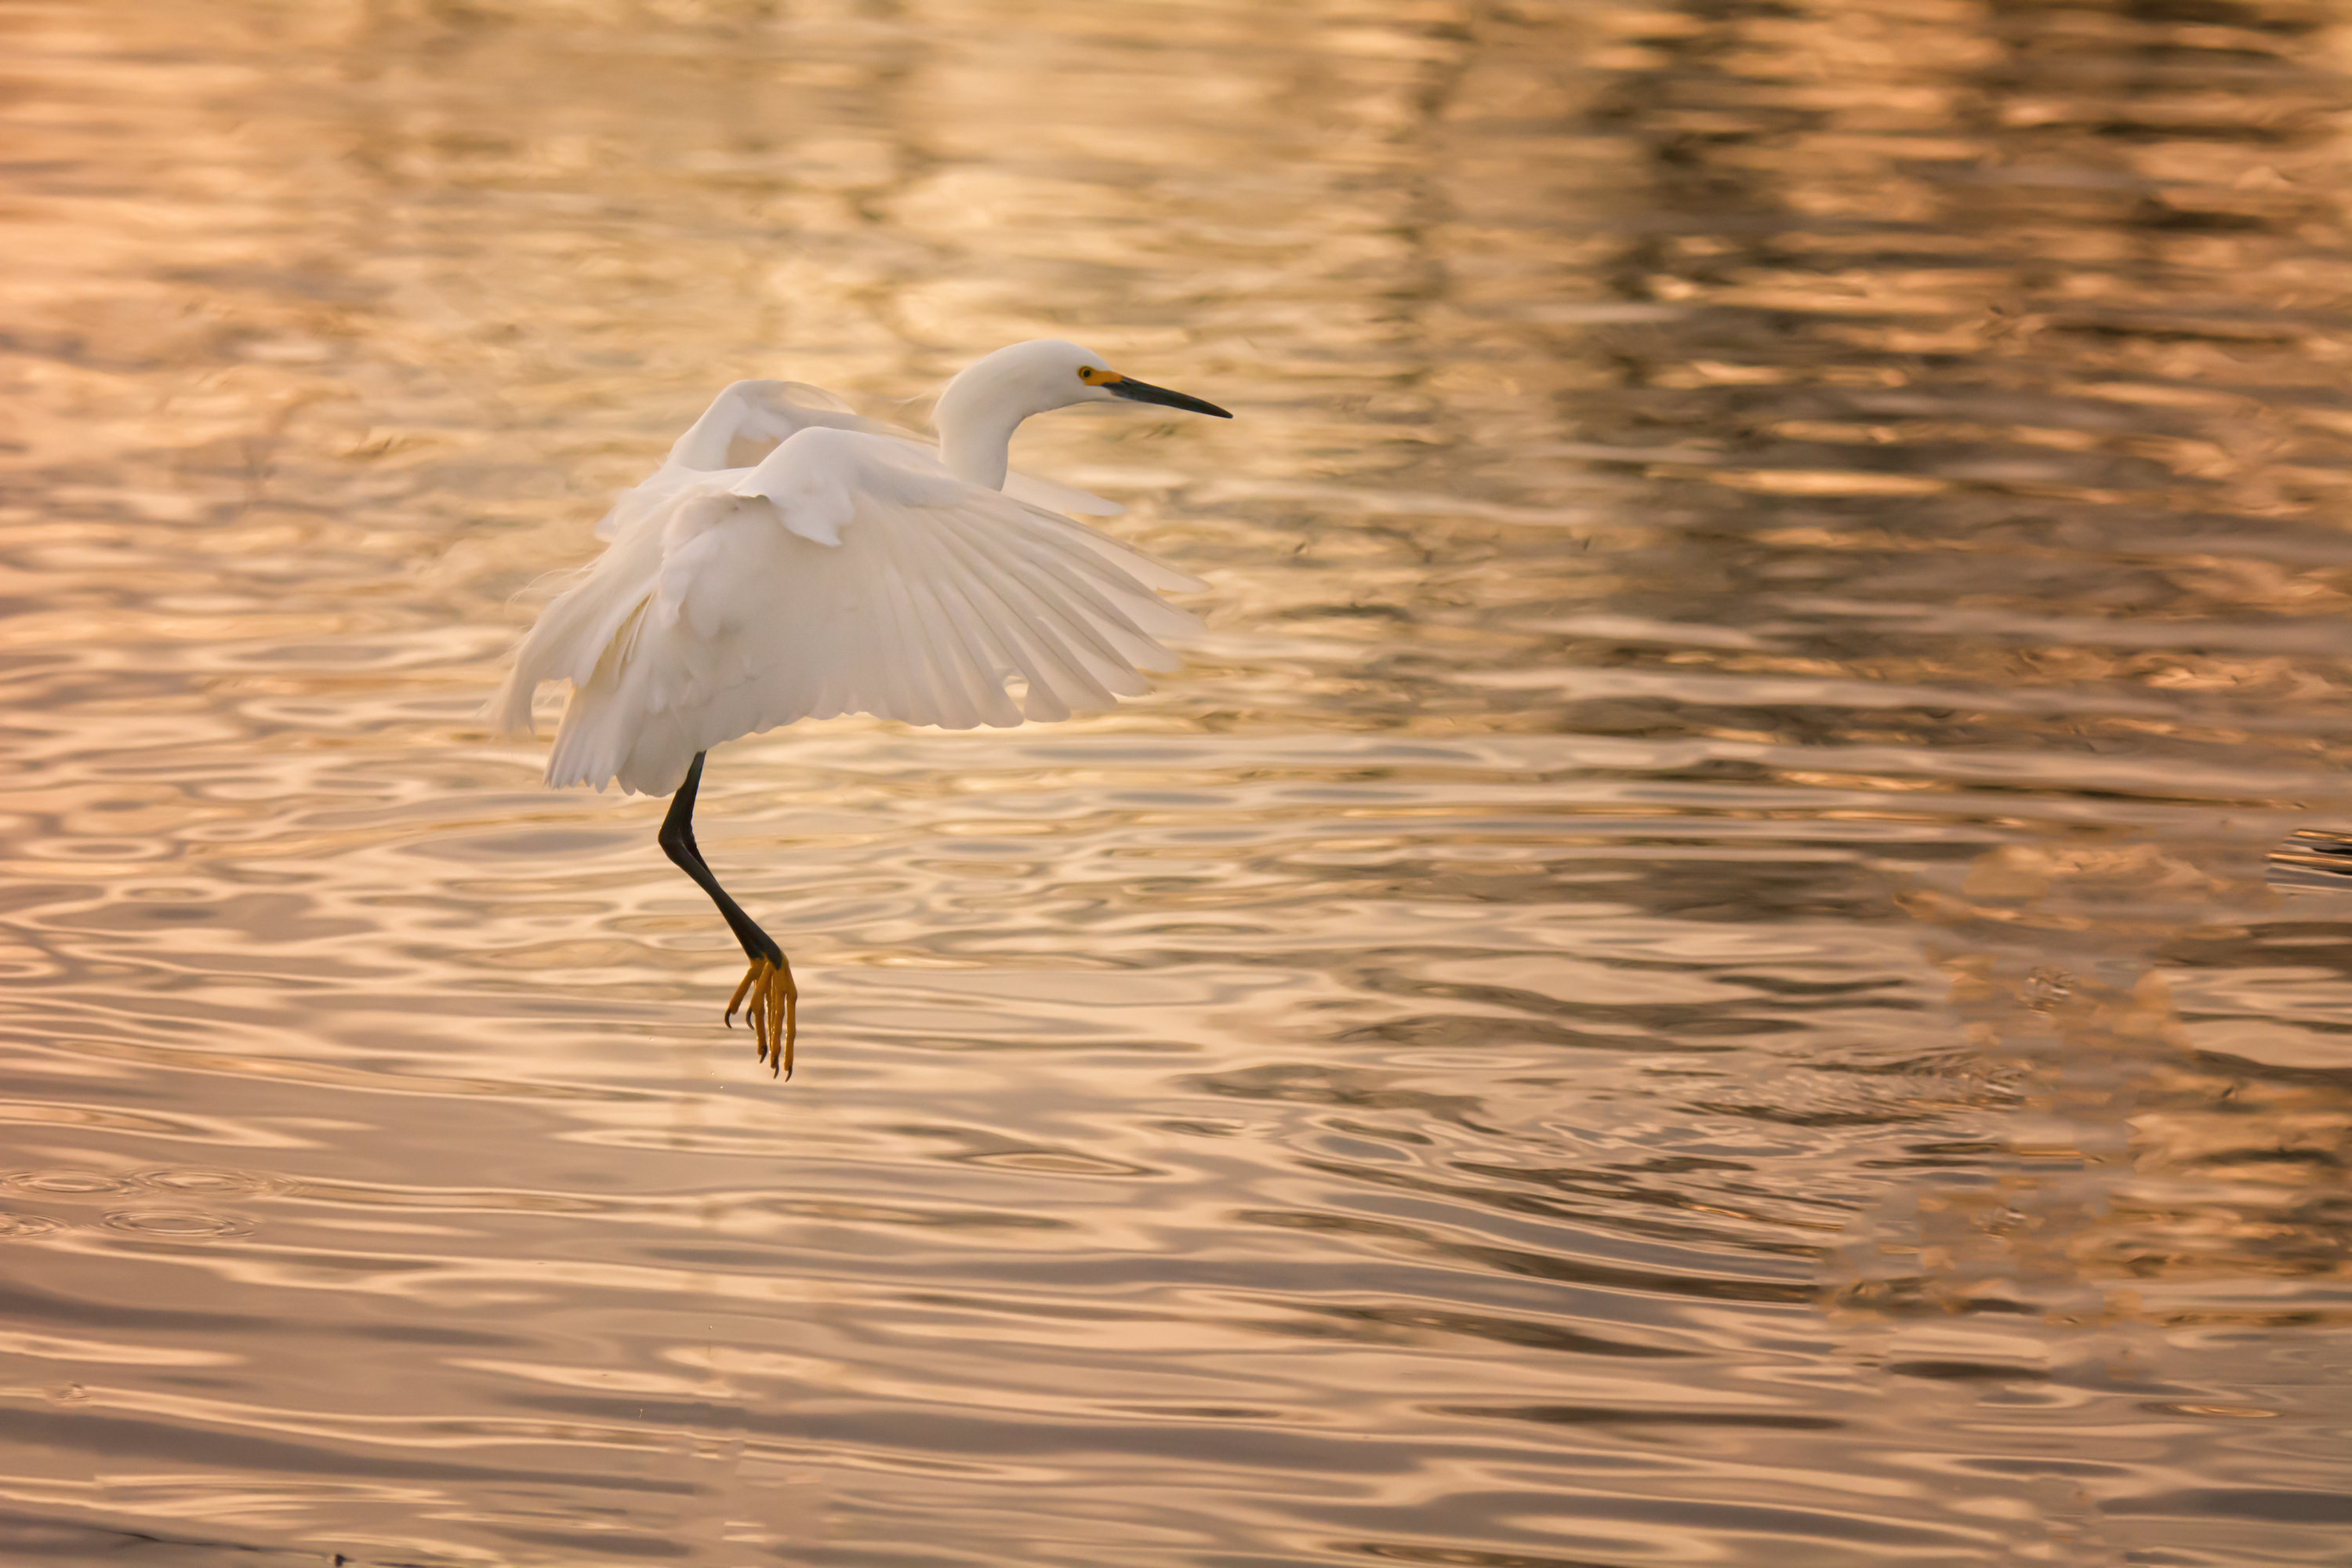 The beauty of the Snowy Egret